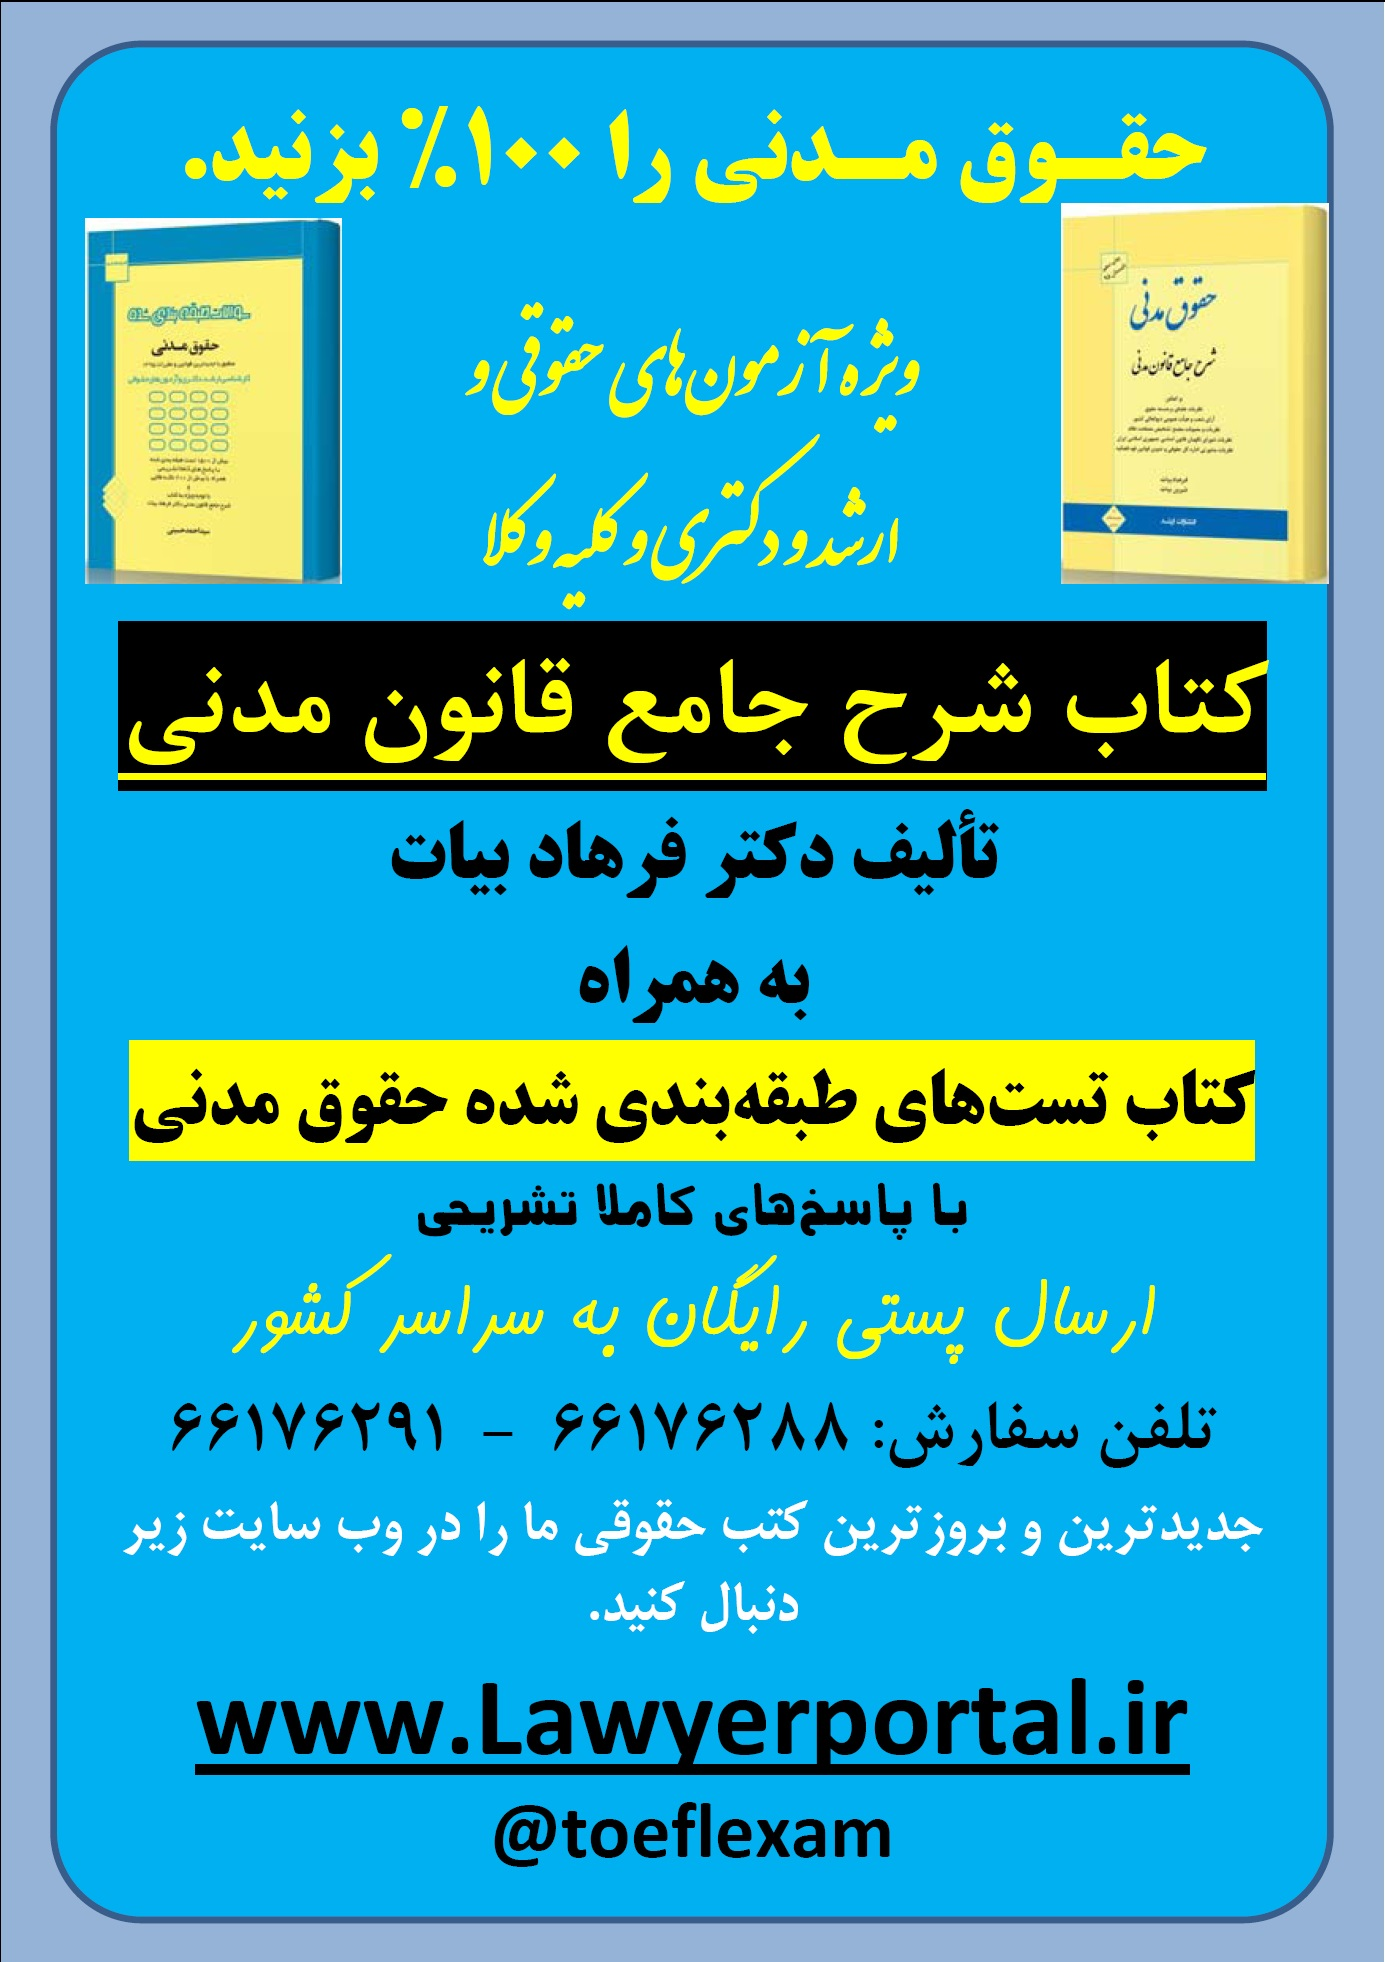 http://s1.picofile.com/file/8284768600/tabligh_bayat.jpg